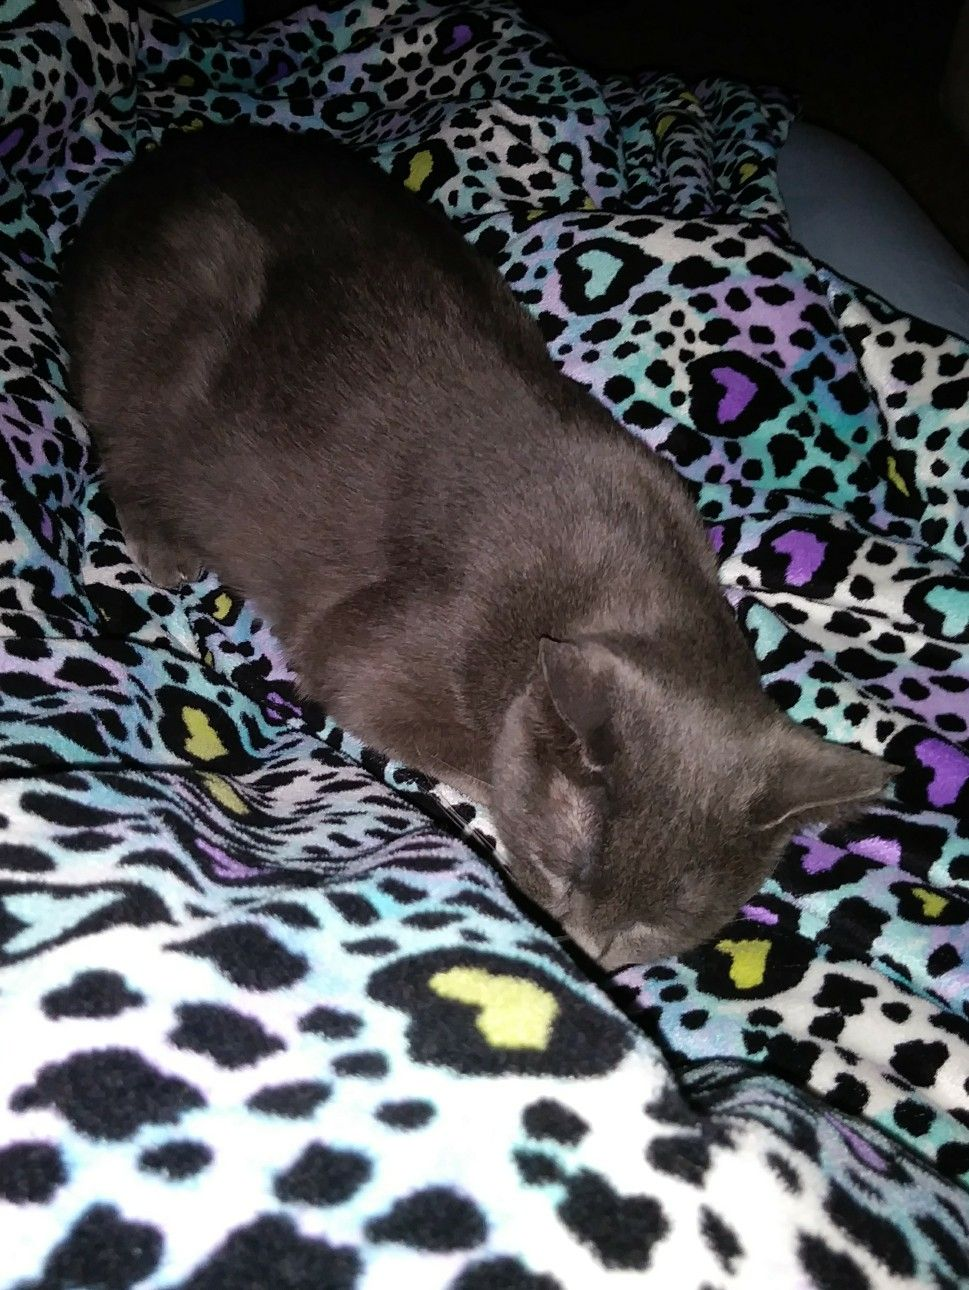 This Is My Cat Princess She Had Two Litters The First Litter She Had Four We Kept The First Baby The Was Born And We Named Him Simba Cat Litter Litter